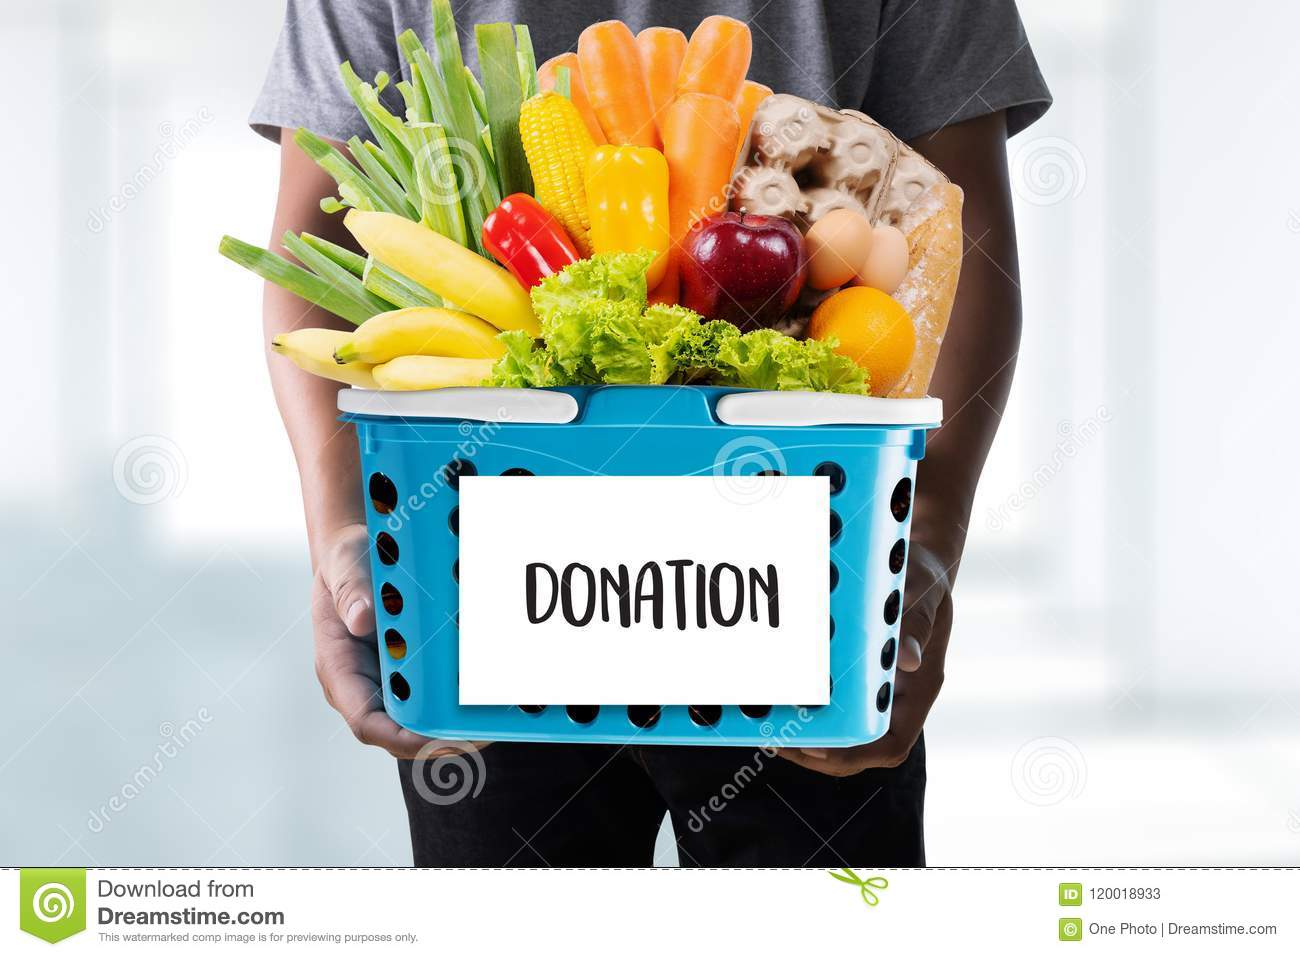 dbfree someone stole donations - 870×580